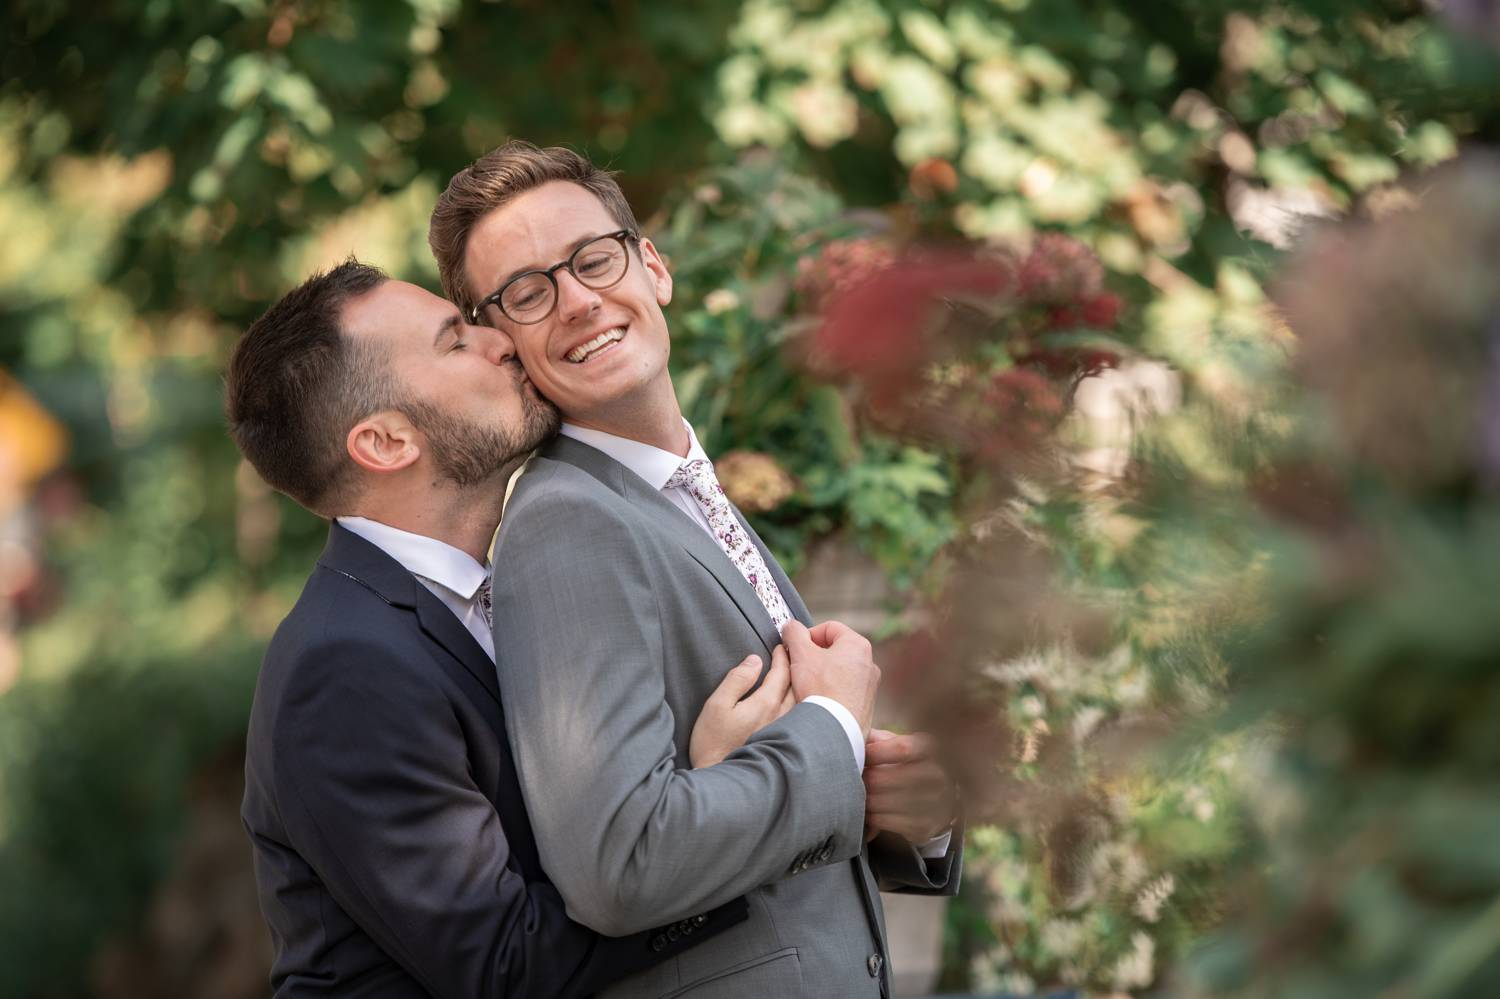 A groom in a charcoal suit stands behind his husband and kisses his cheek for an outdoor wedding day portrait